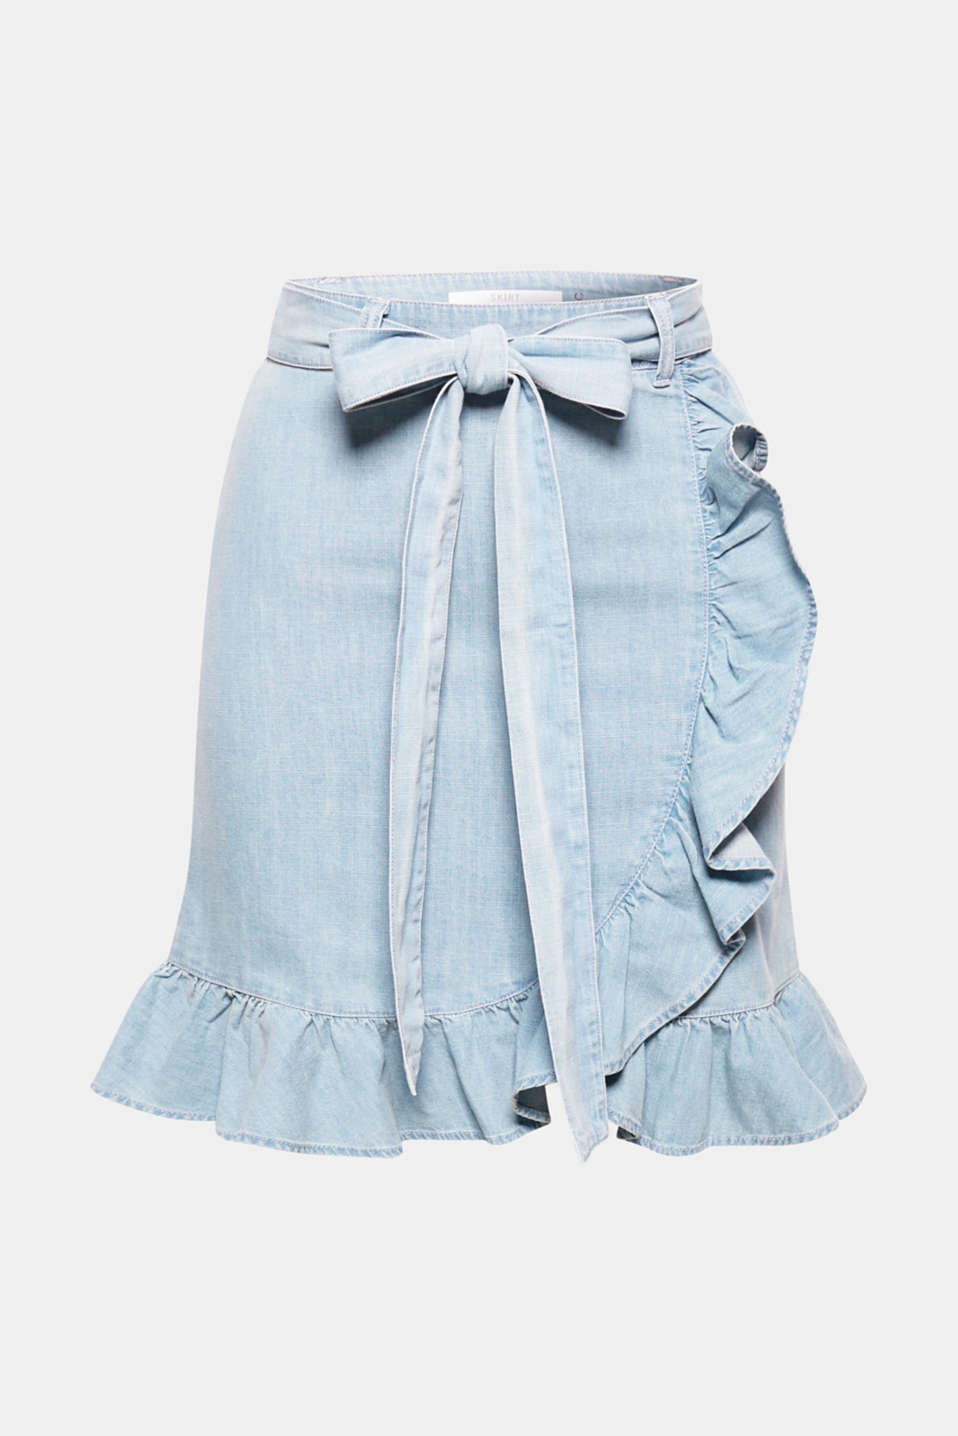 This lightweight denim skirt gets its feminine flair from its wrap-over look with beautiful flounces.